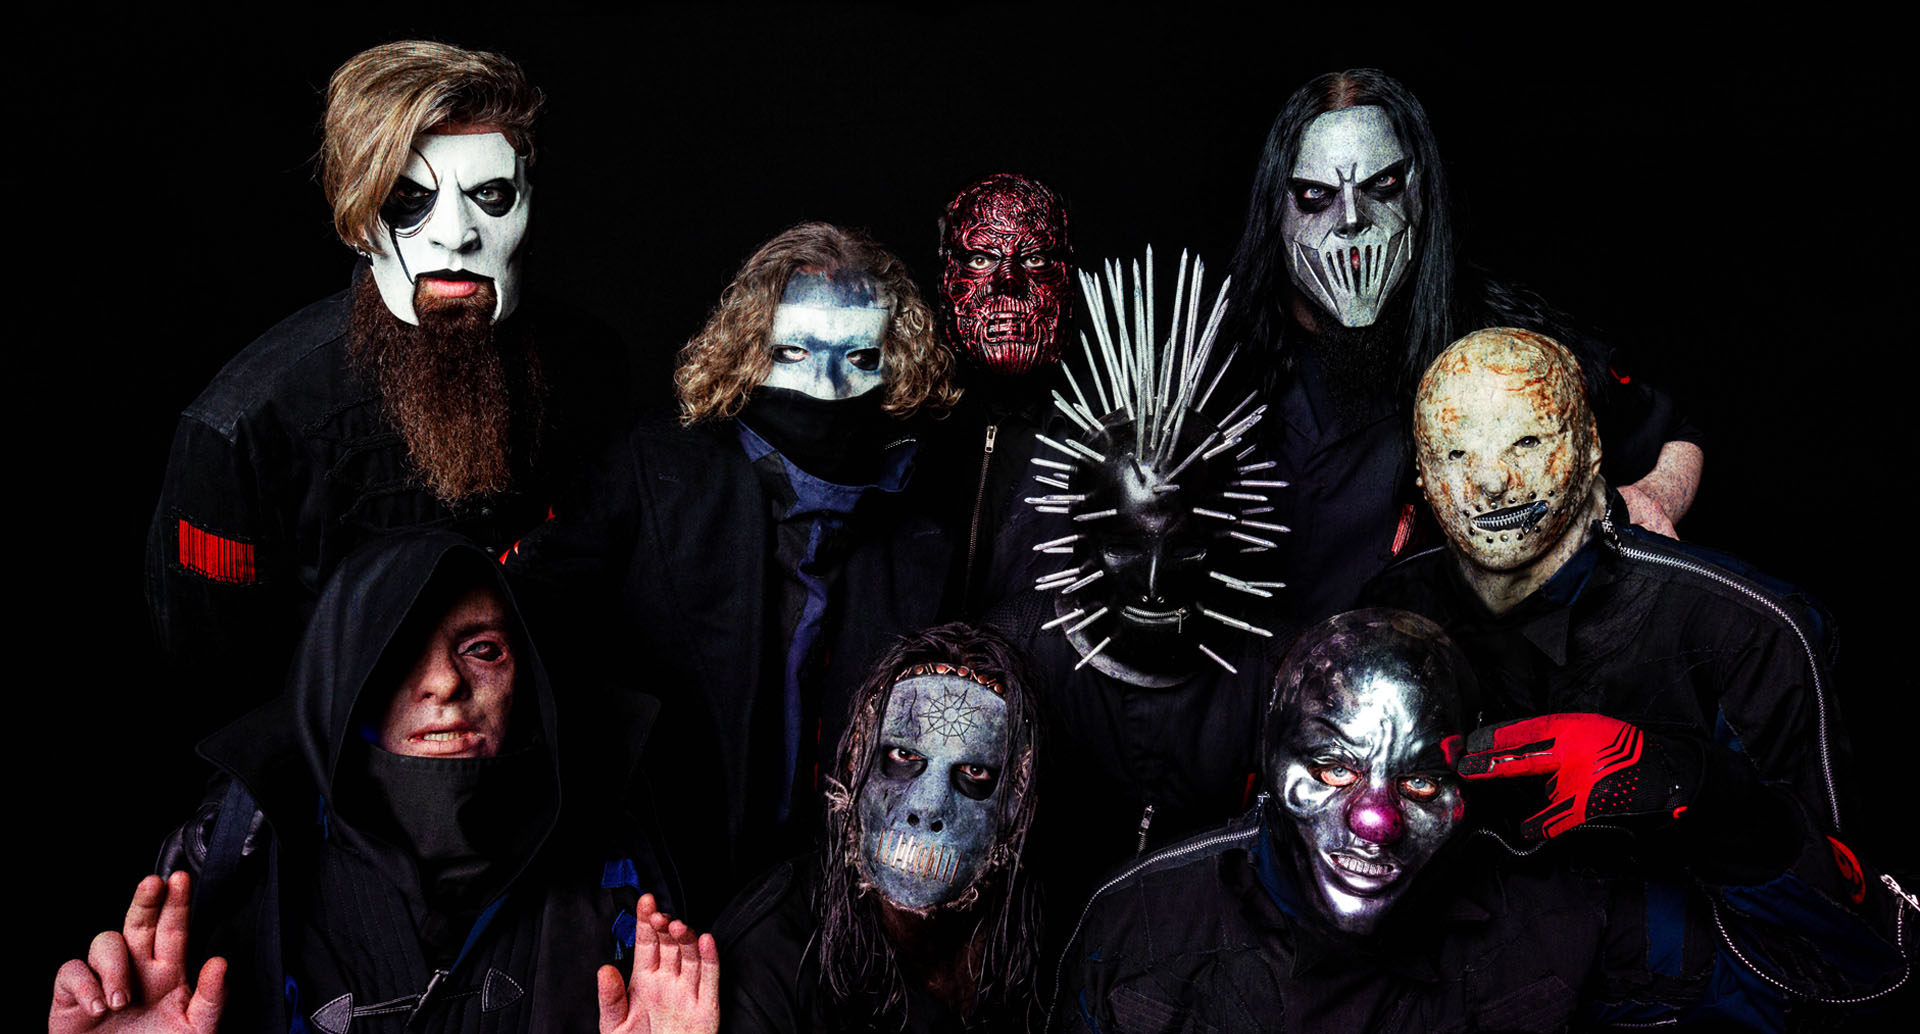 Slipknot to perform at Singapore Rockfest II in March